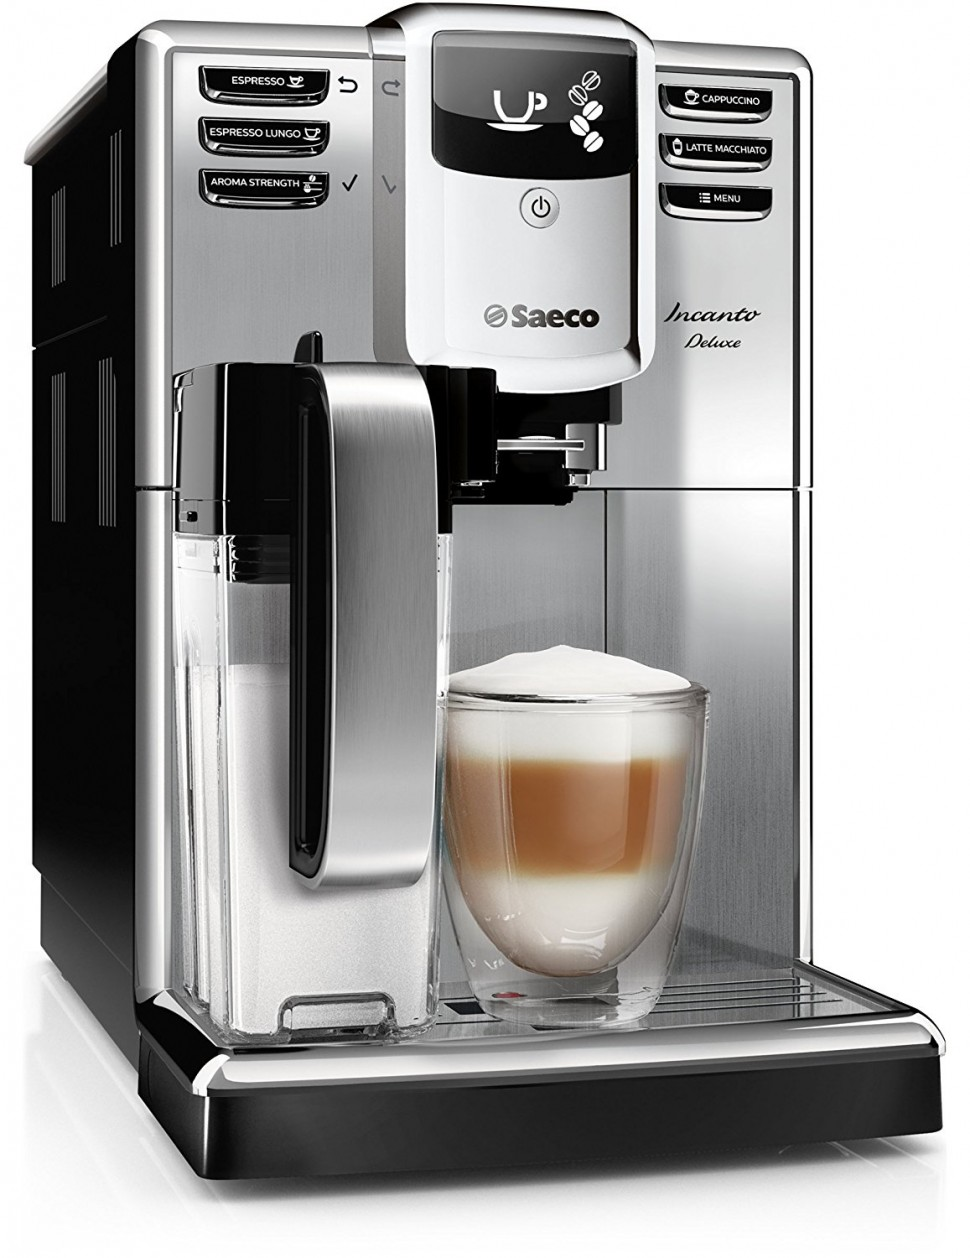 philips saeco hd8921 01 incanto deluxe coffee machine. Black Bedroom Furniture Sets. Home Design Ideas